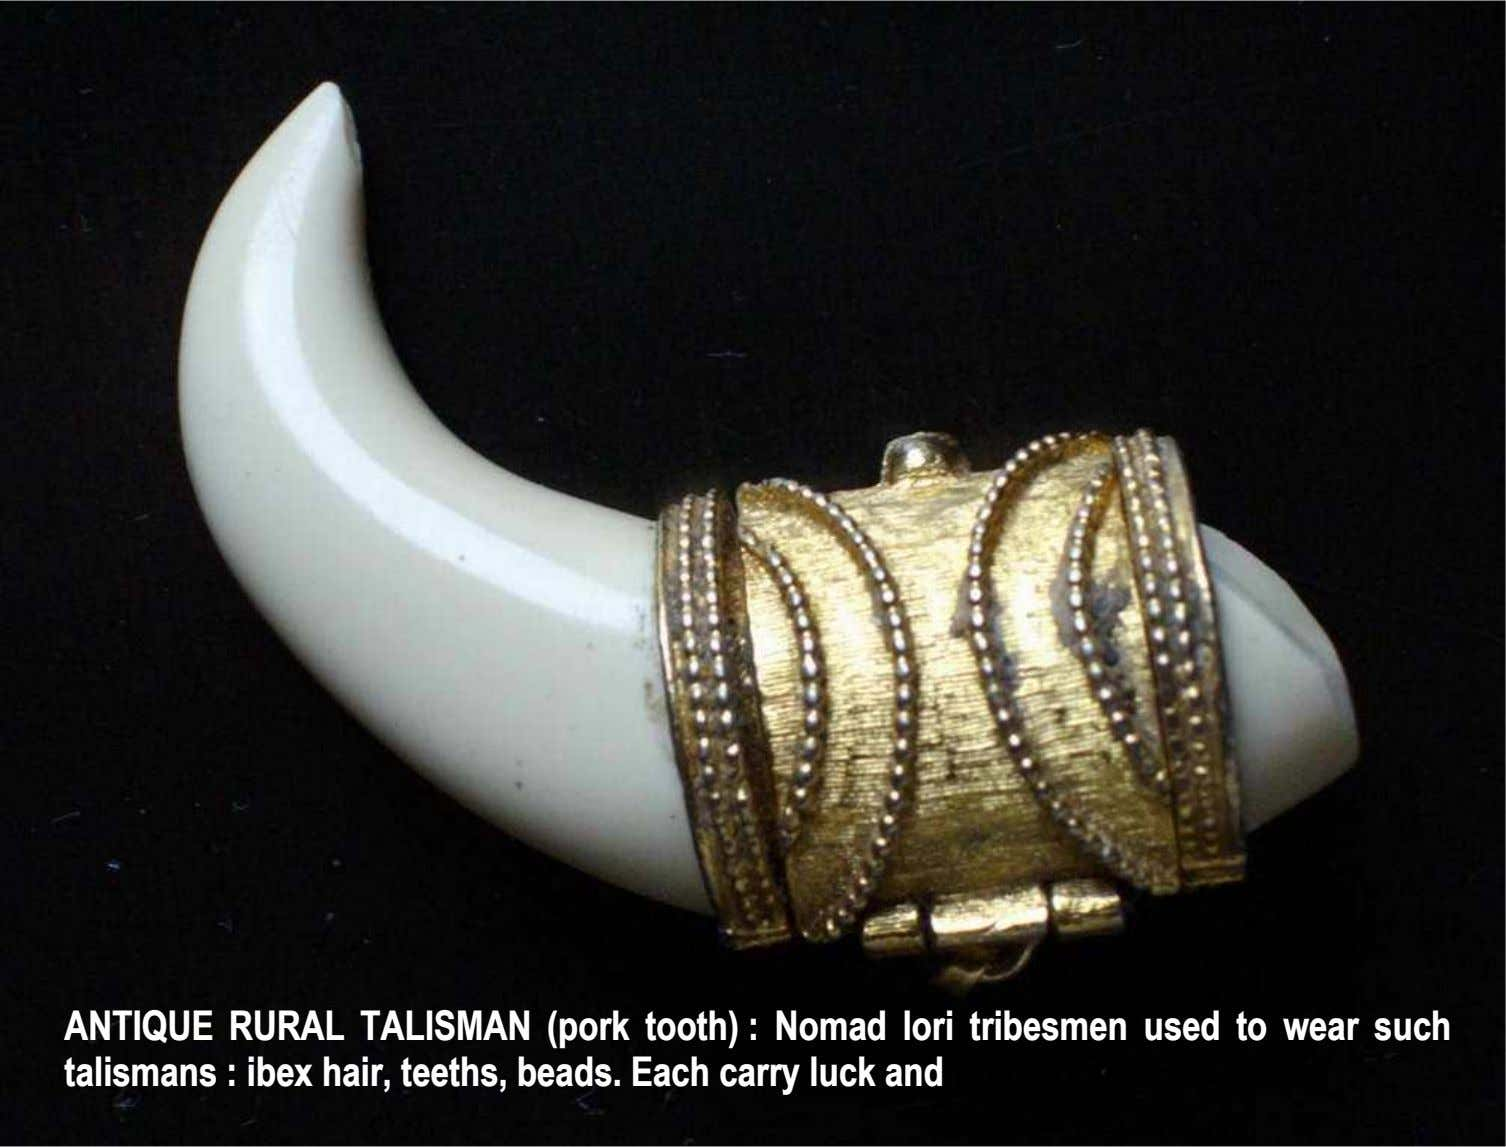 ANTIQUE RURAL TALISMAN ( pork tooth) Nomad lori tribesmen used to wear such ANTIQUE RURAL